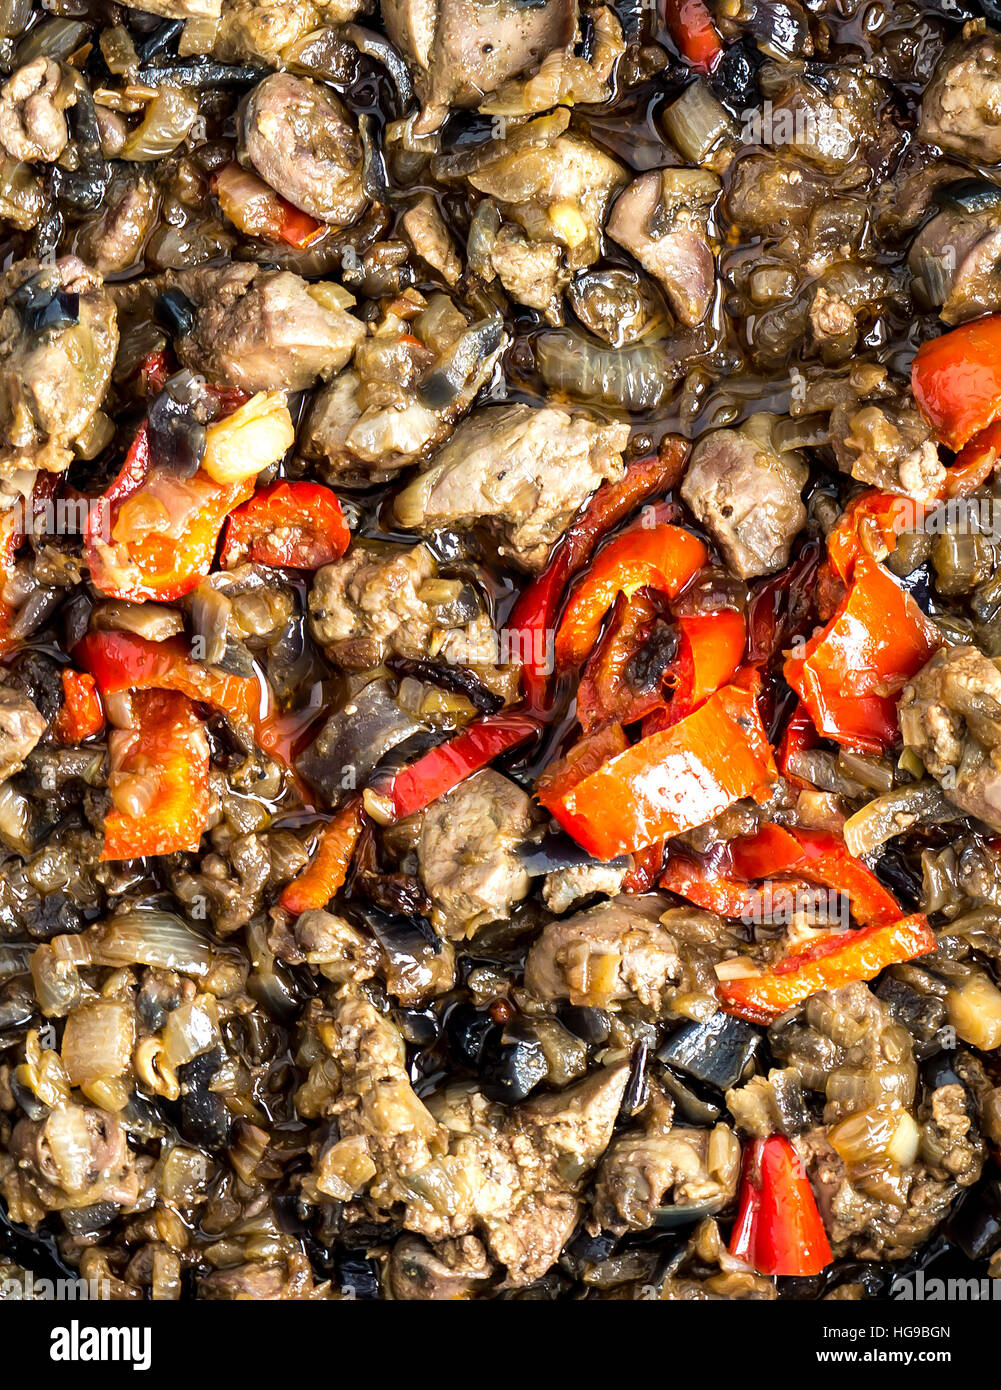 The fried chicken liver background. - Stock Image